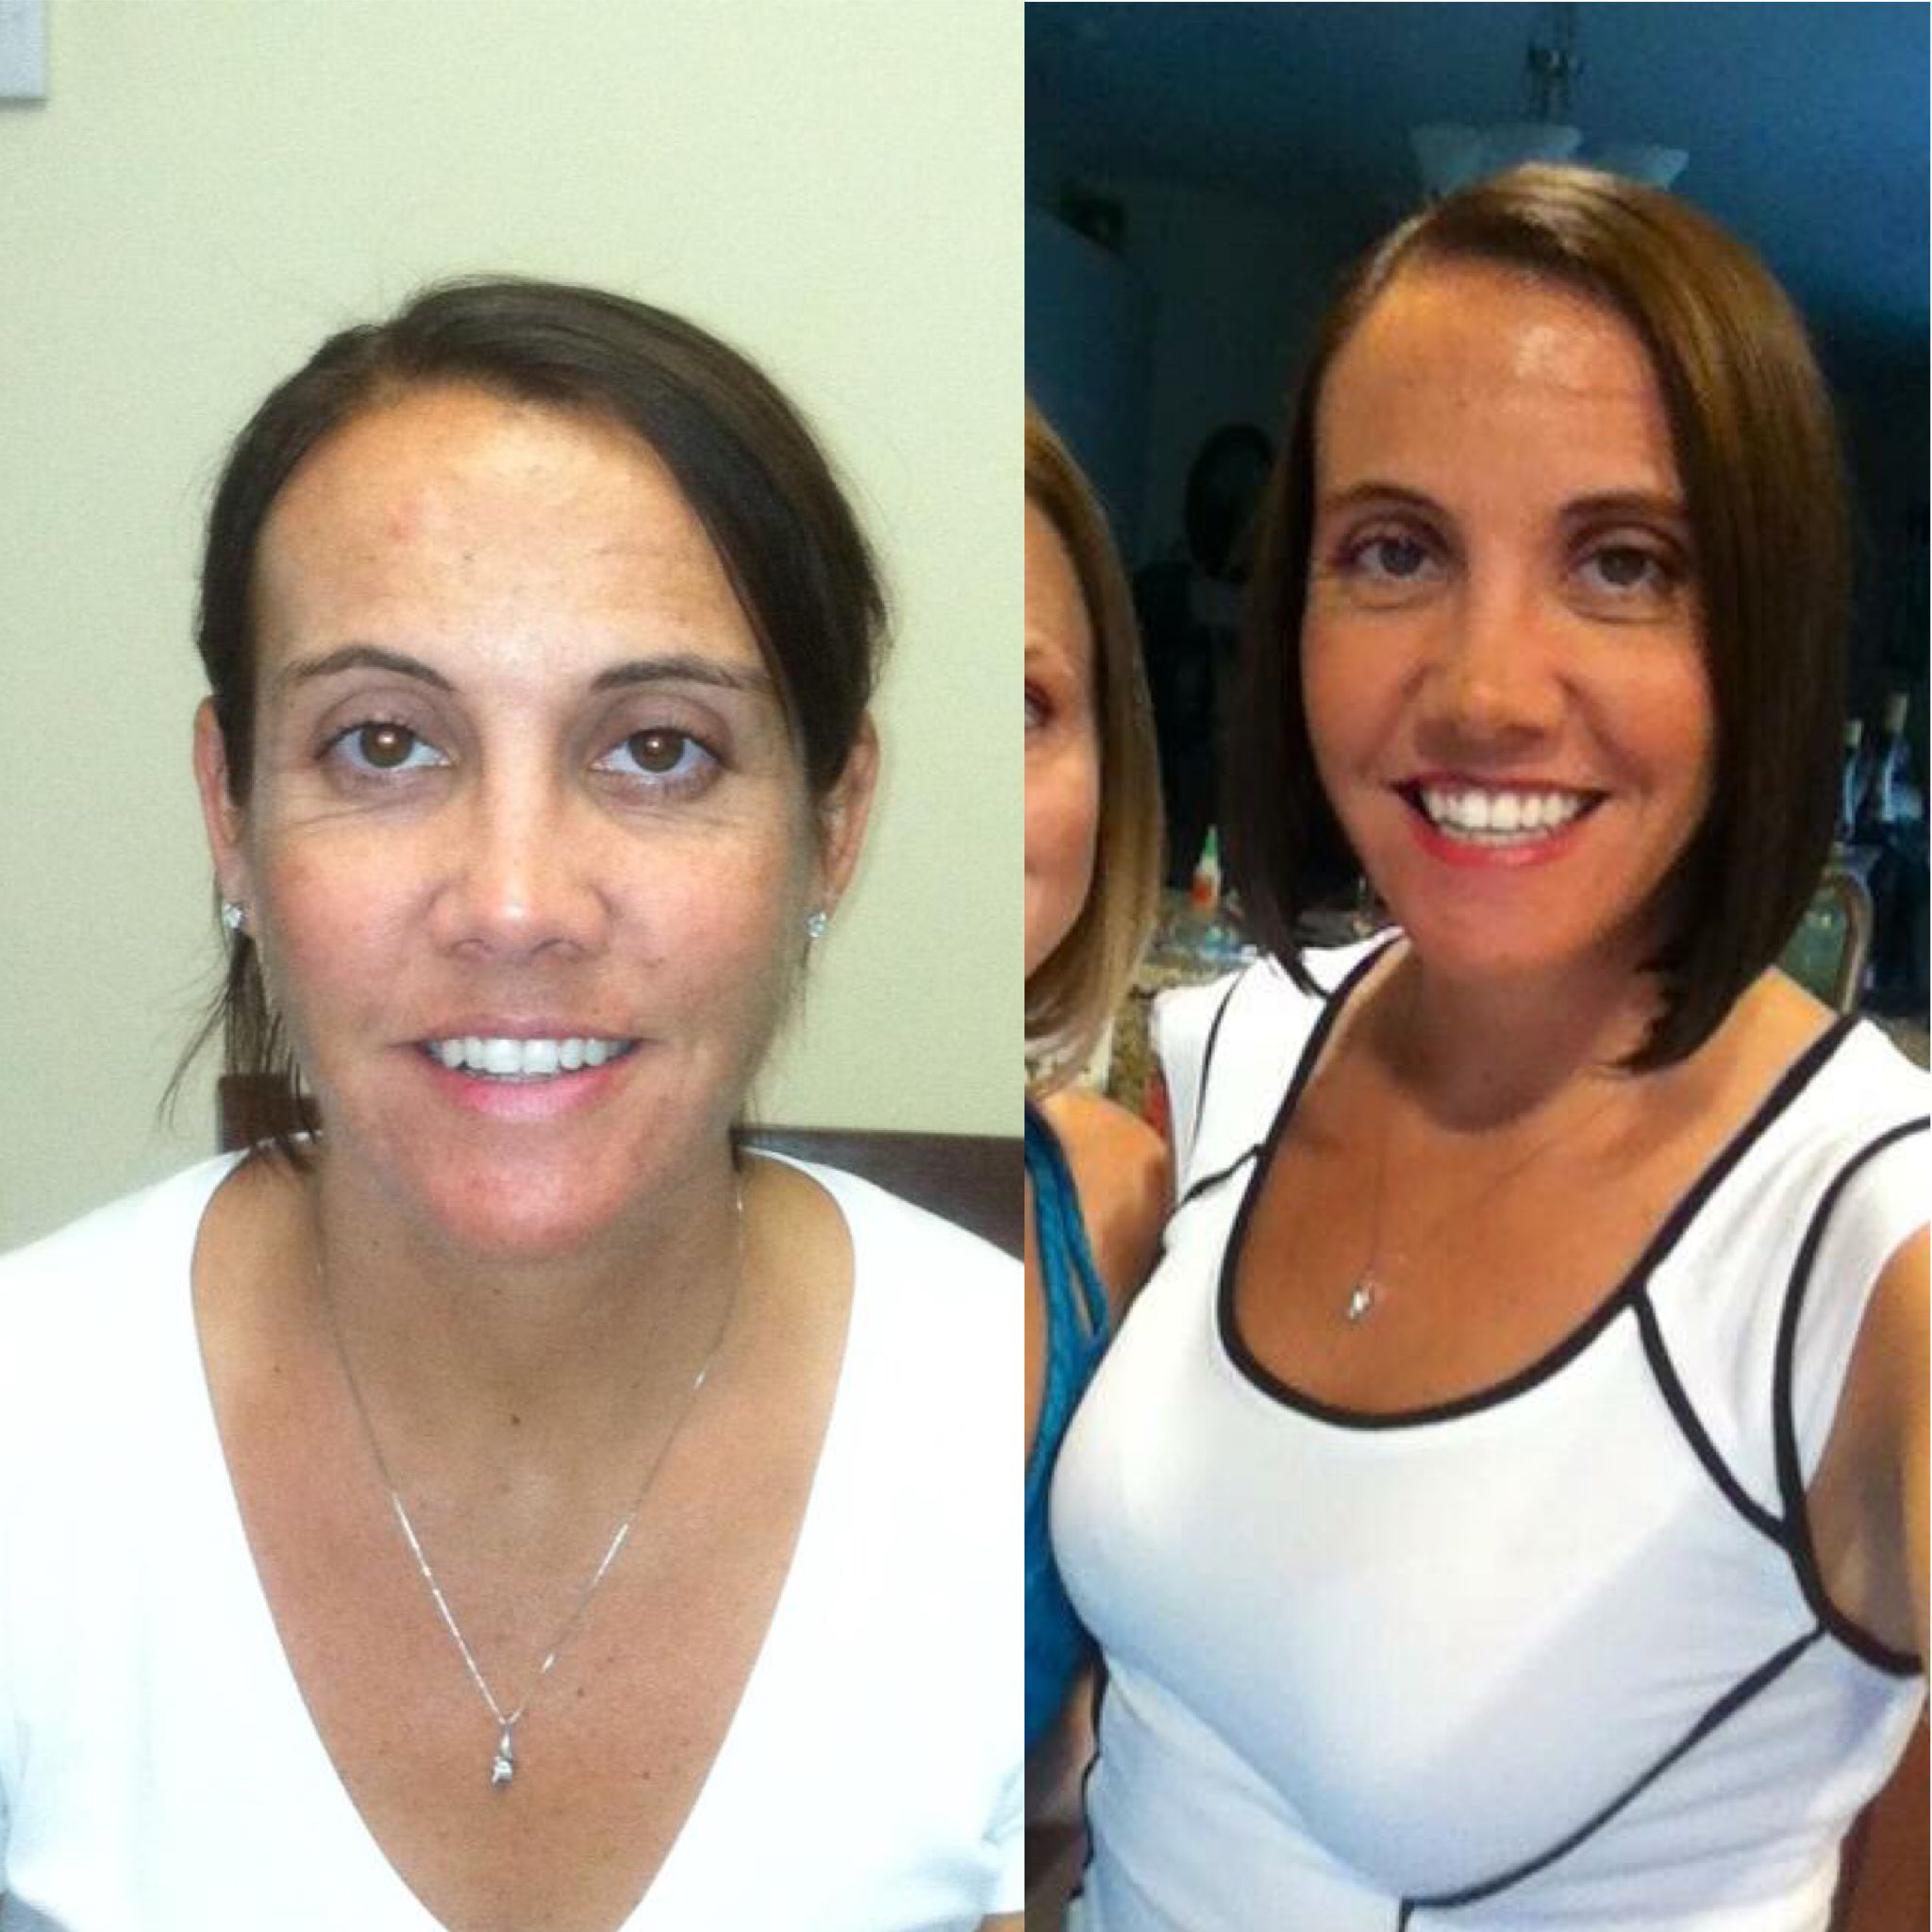 Dyan Gonzalez, she was so happy with her end result she was ok with posting her before! She looks great!